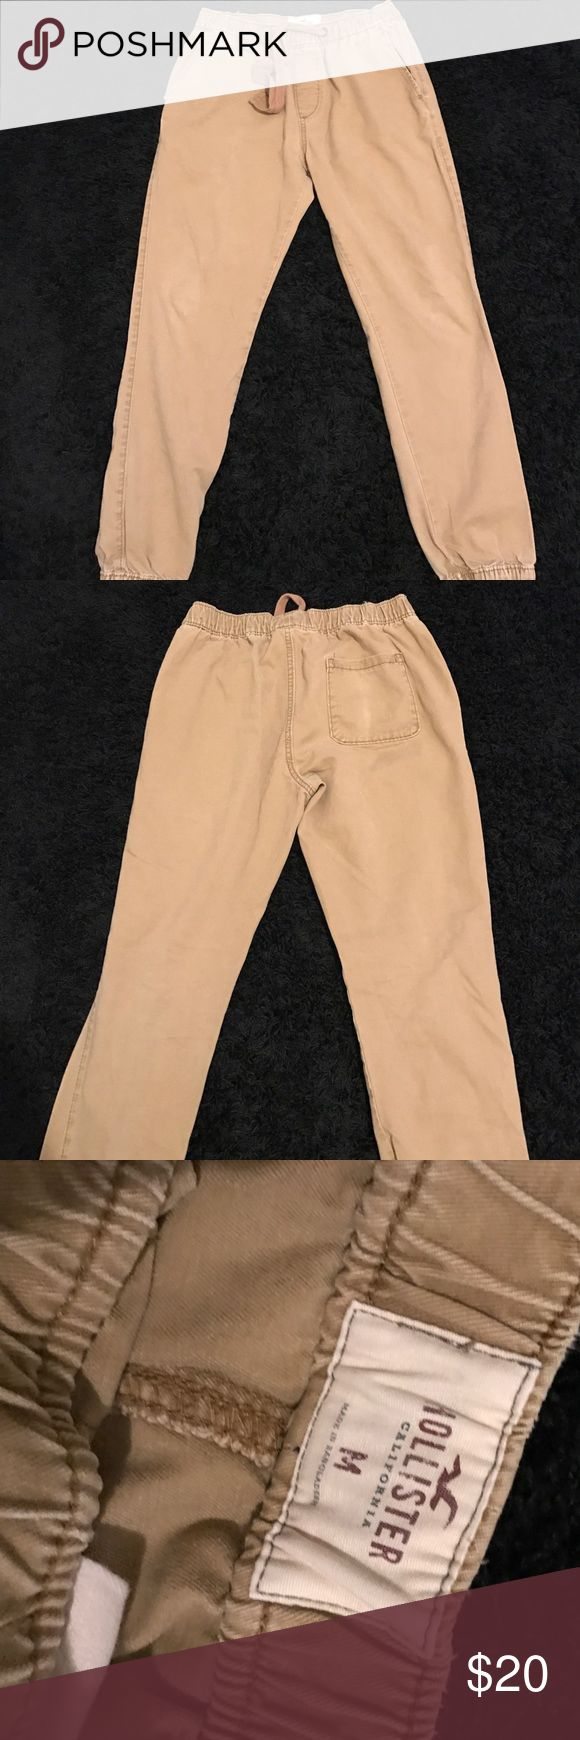 Men's Hollister chino jogger Sz M, light tan chino jogger. Worn a few times but in very well tact and great condition. Front pockets and back. Drawstring to adjust. Hollister Pants Sweatpants & Joggers